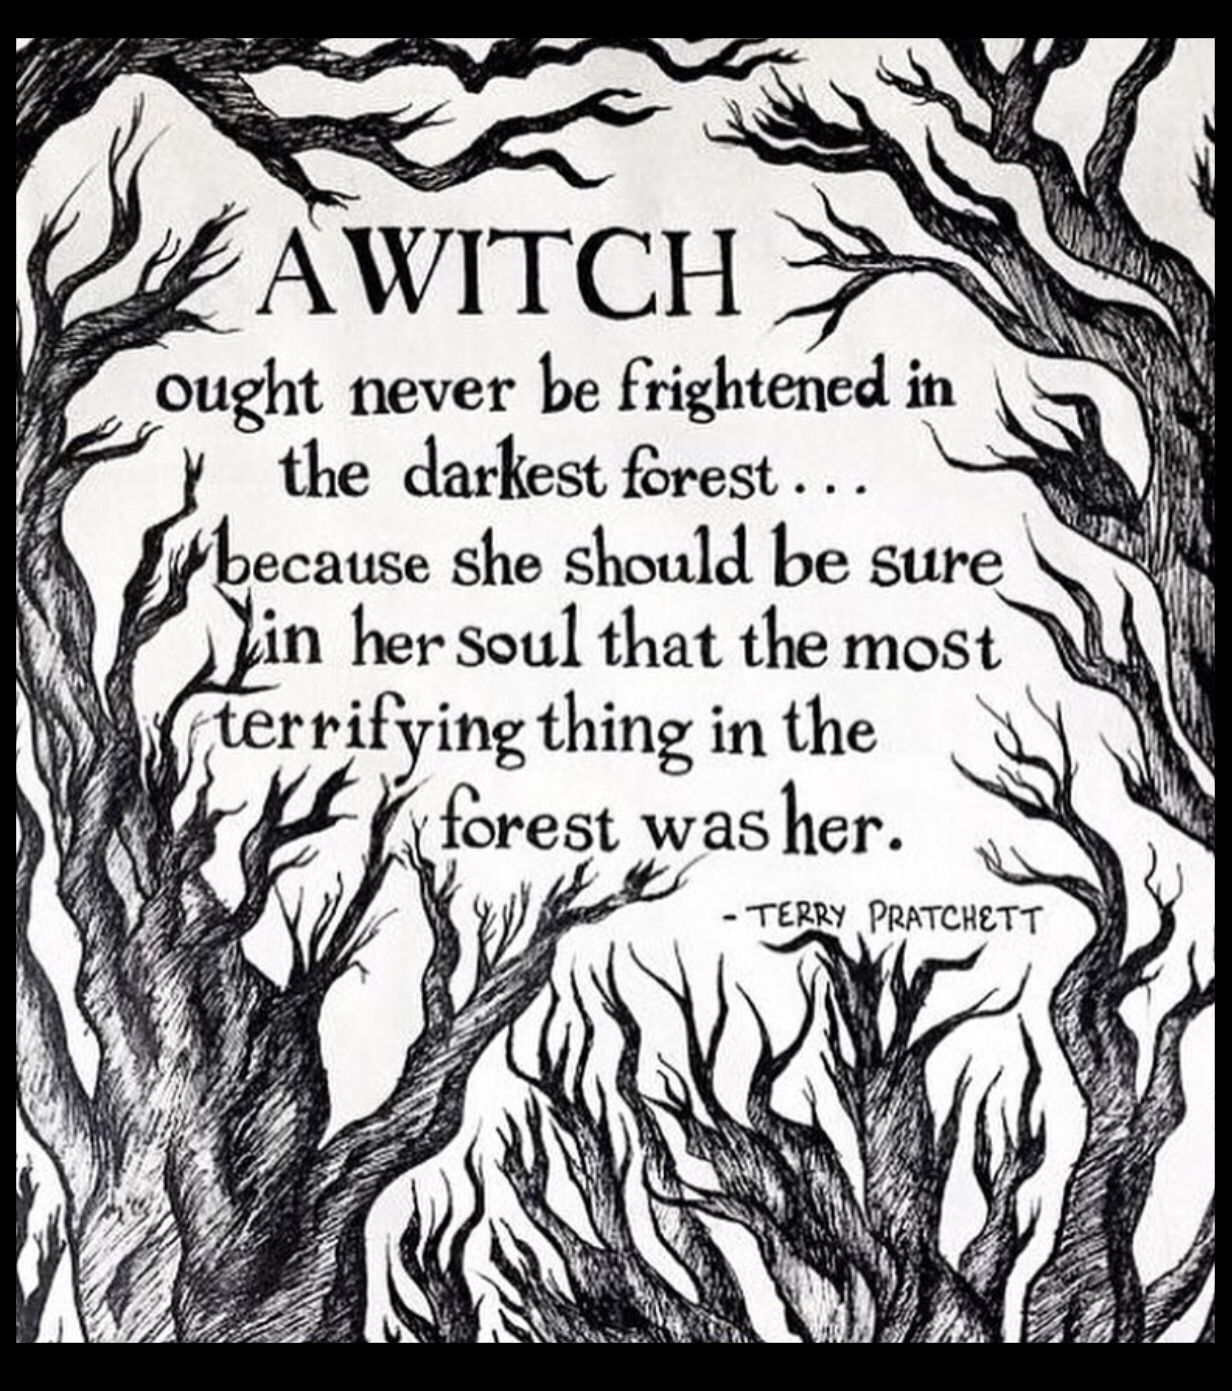 Wicca · Witch QuotesDark ForestHalloween ...